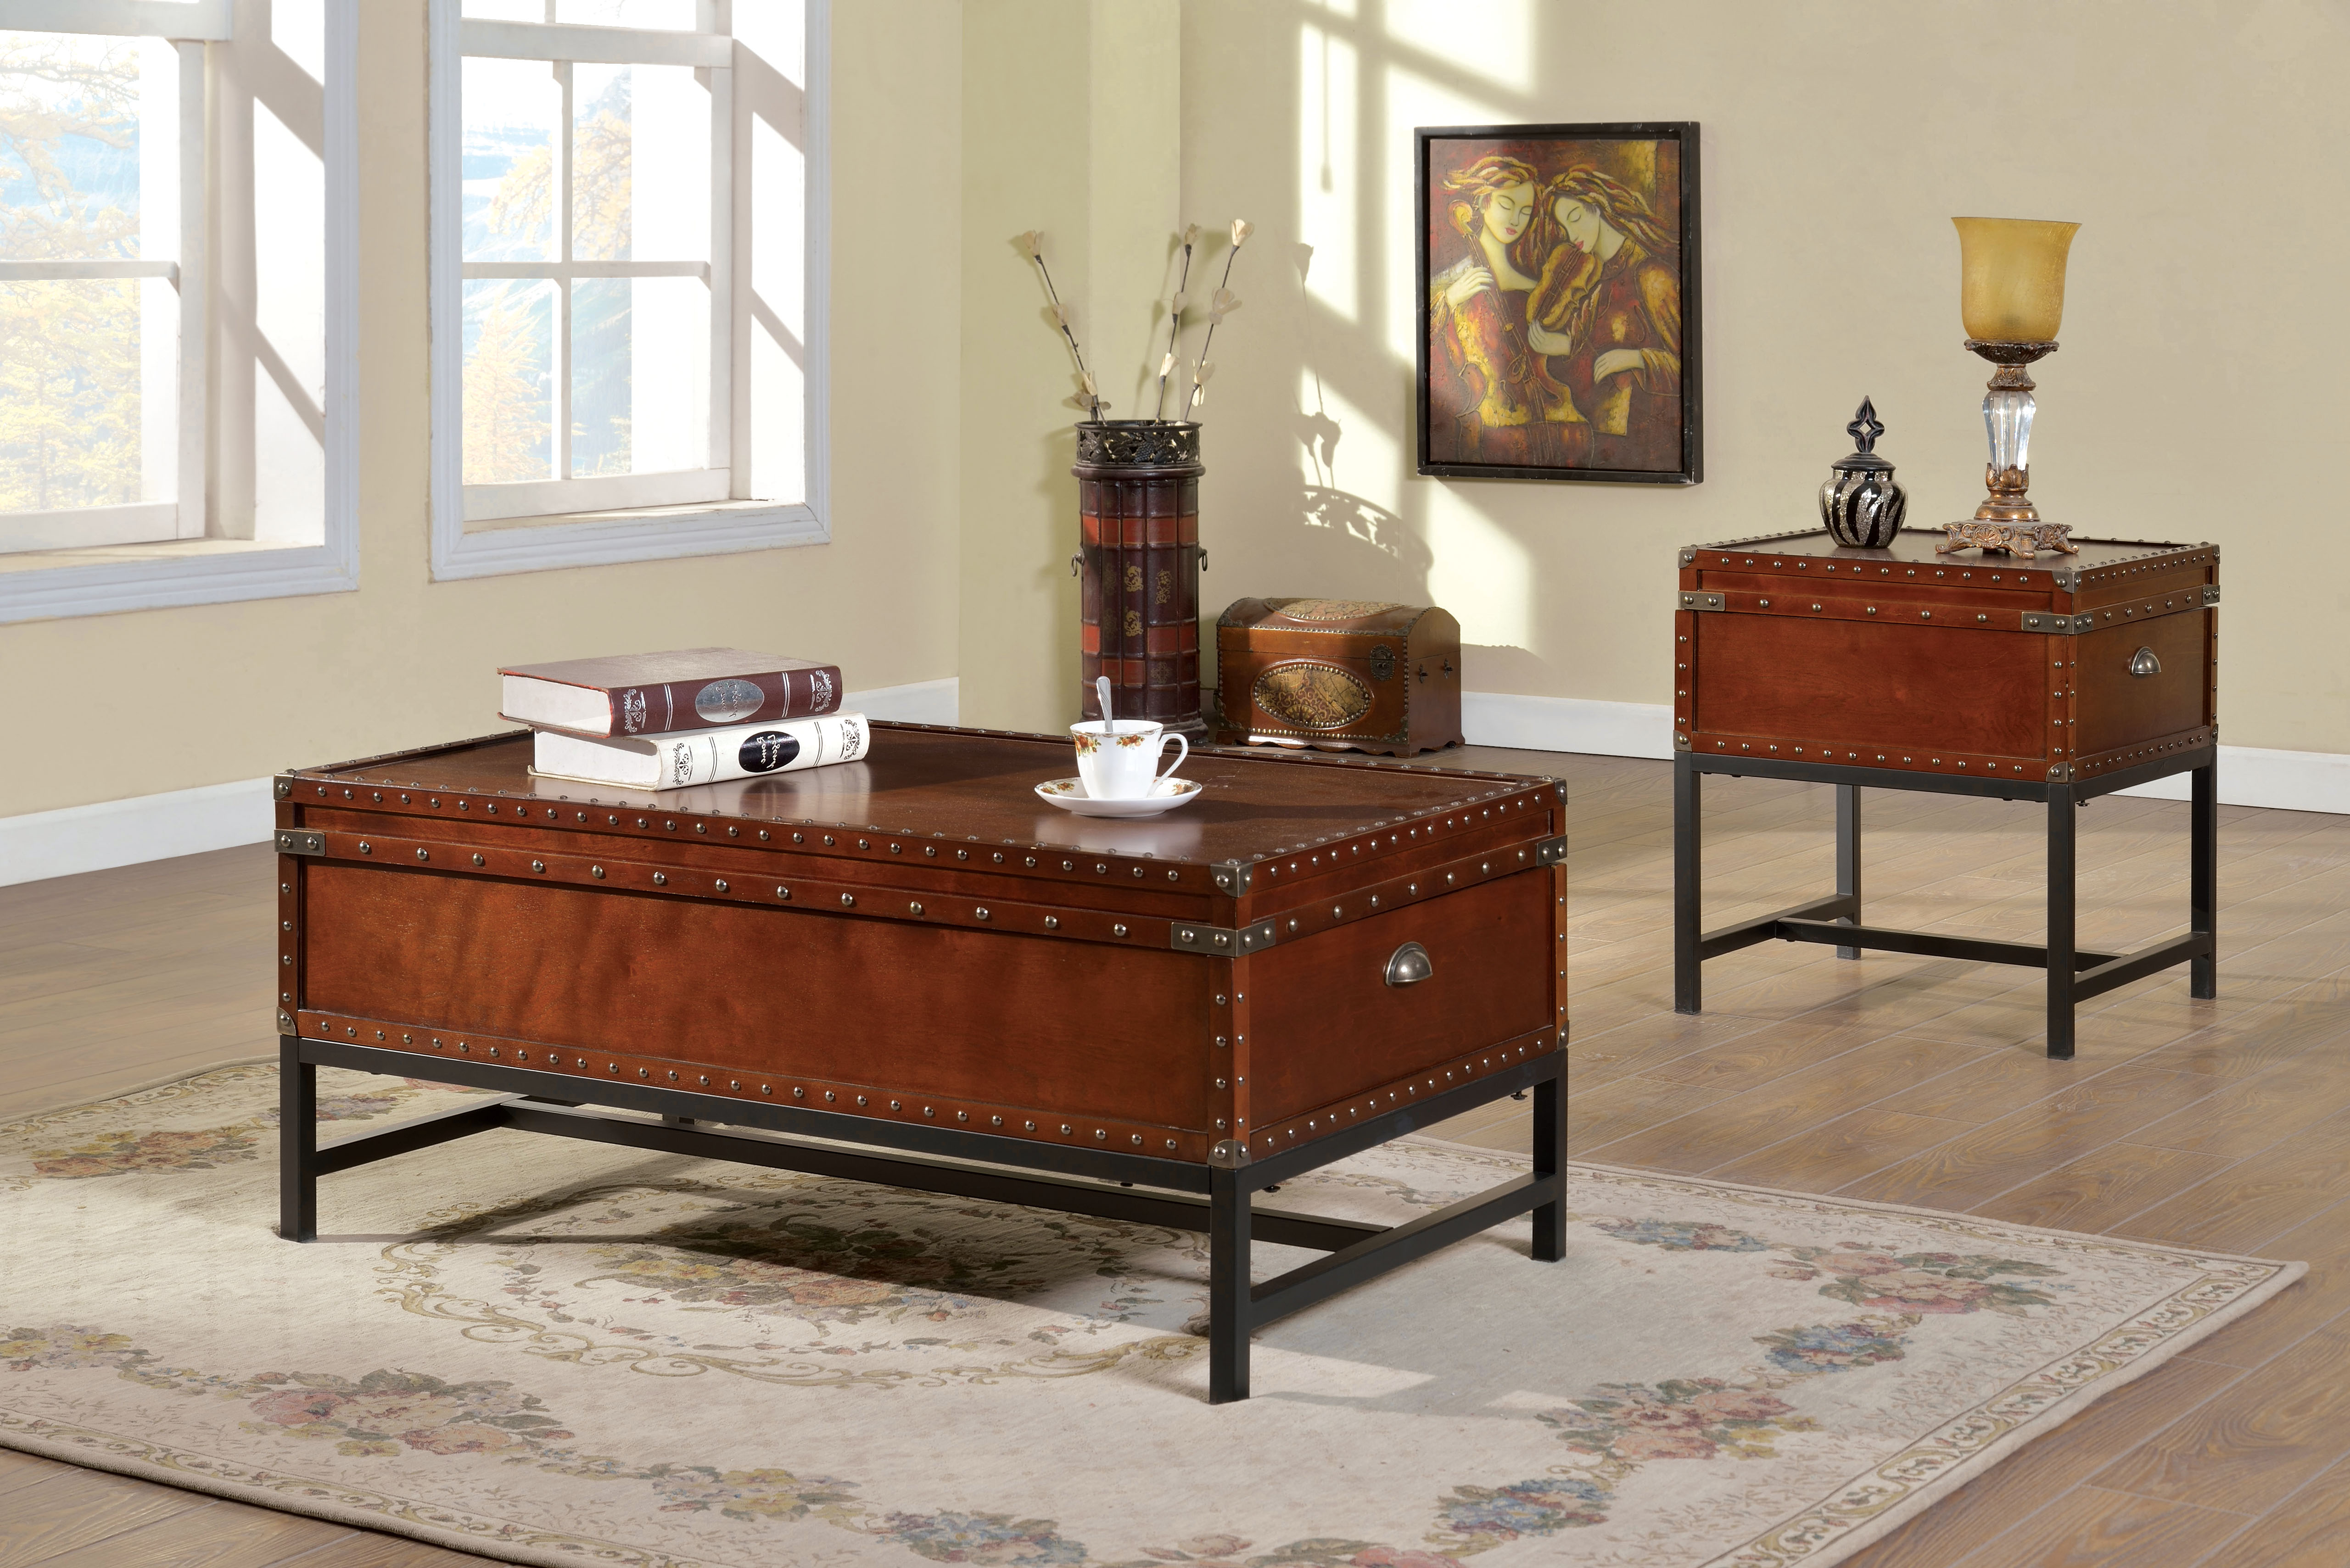 furniture america cherry reichel piece trunk style accent table set prod corner accents narrow trestle dining glass top patio gold setting half circle console matching bedside